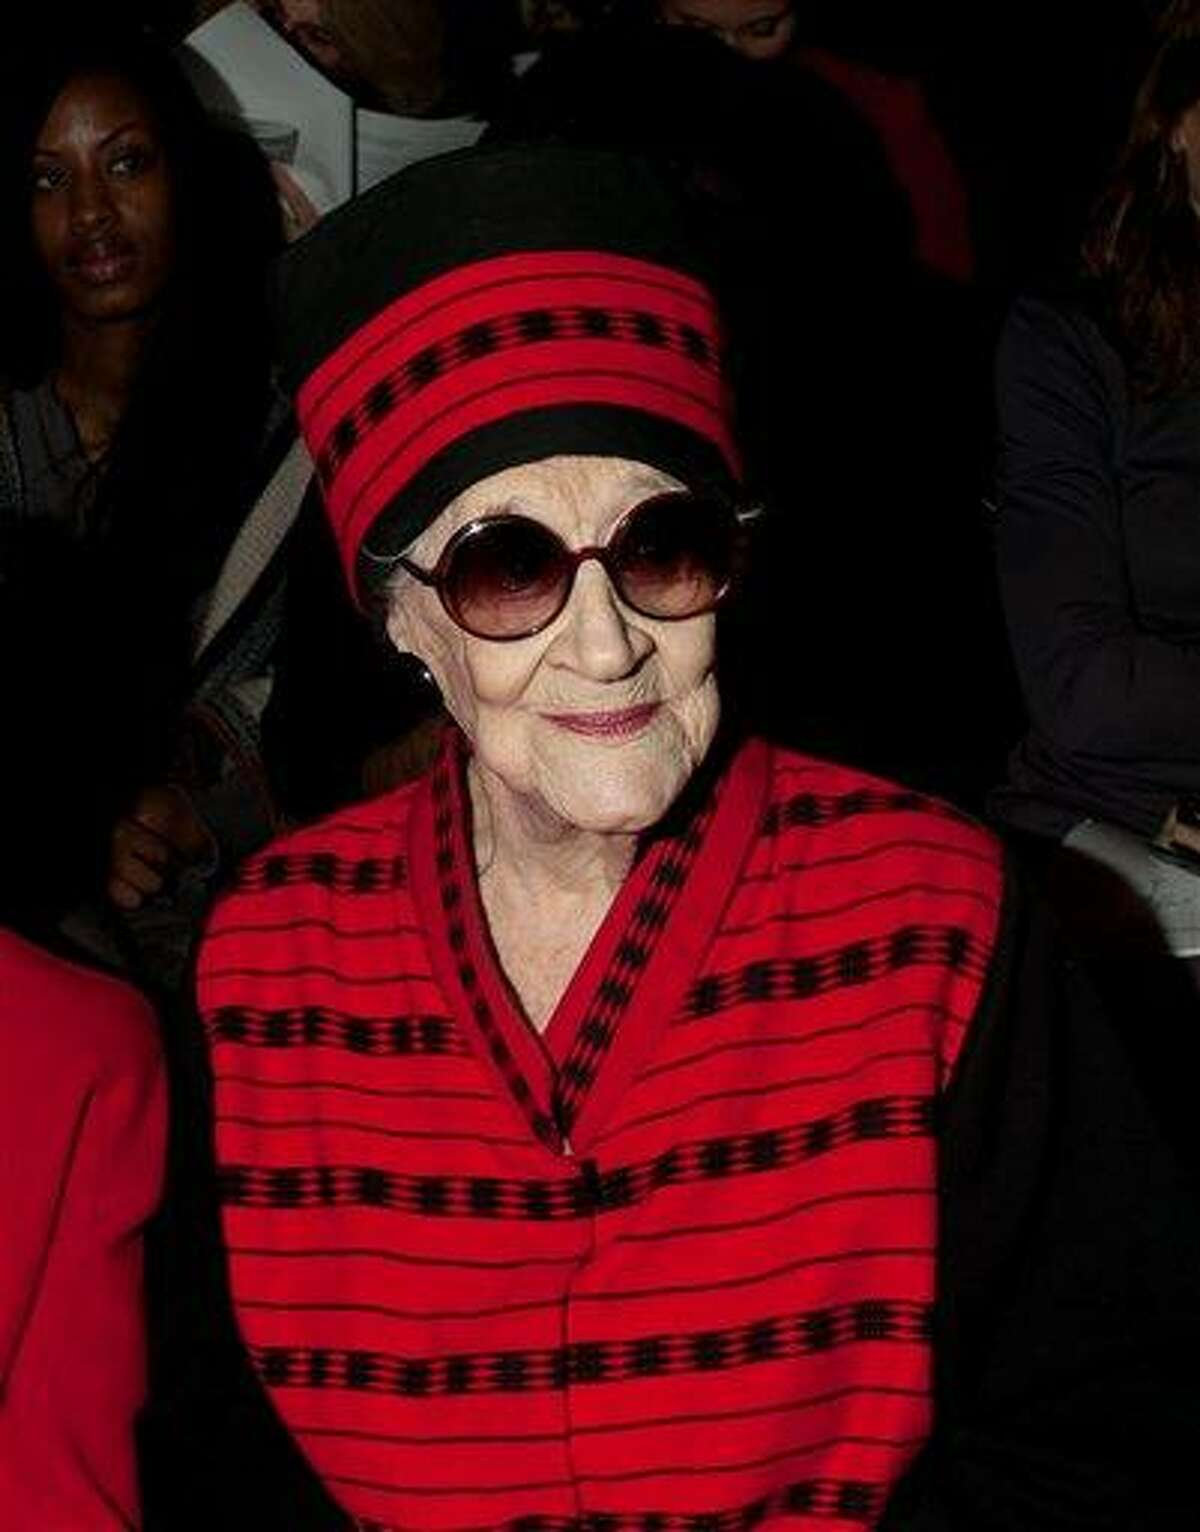 Zelda Kaplan, 95, waits for the Joanna Mastroianni Fall 2012 fashion show to begin, during Fashion Week, Wednesday in New York. Kaplan was sitting in the front row of designer Mastroianni's show at Lincoln Center when she collapsed. She was later pronounced dead at Roosevelt Hospital. Kaplan was known for her lively nightlife, attending art openings, parties and clubs with people young enough to be her great-grandchildren. Associated Press